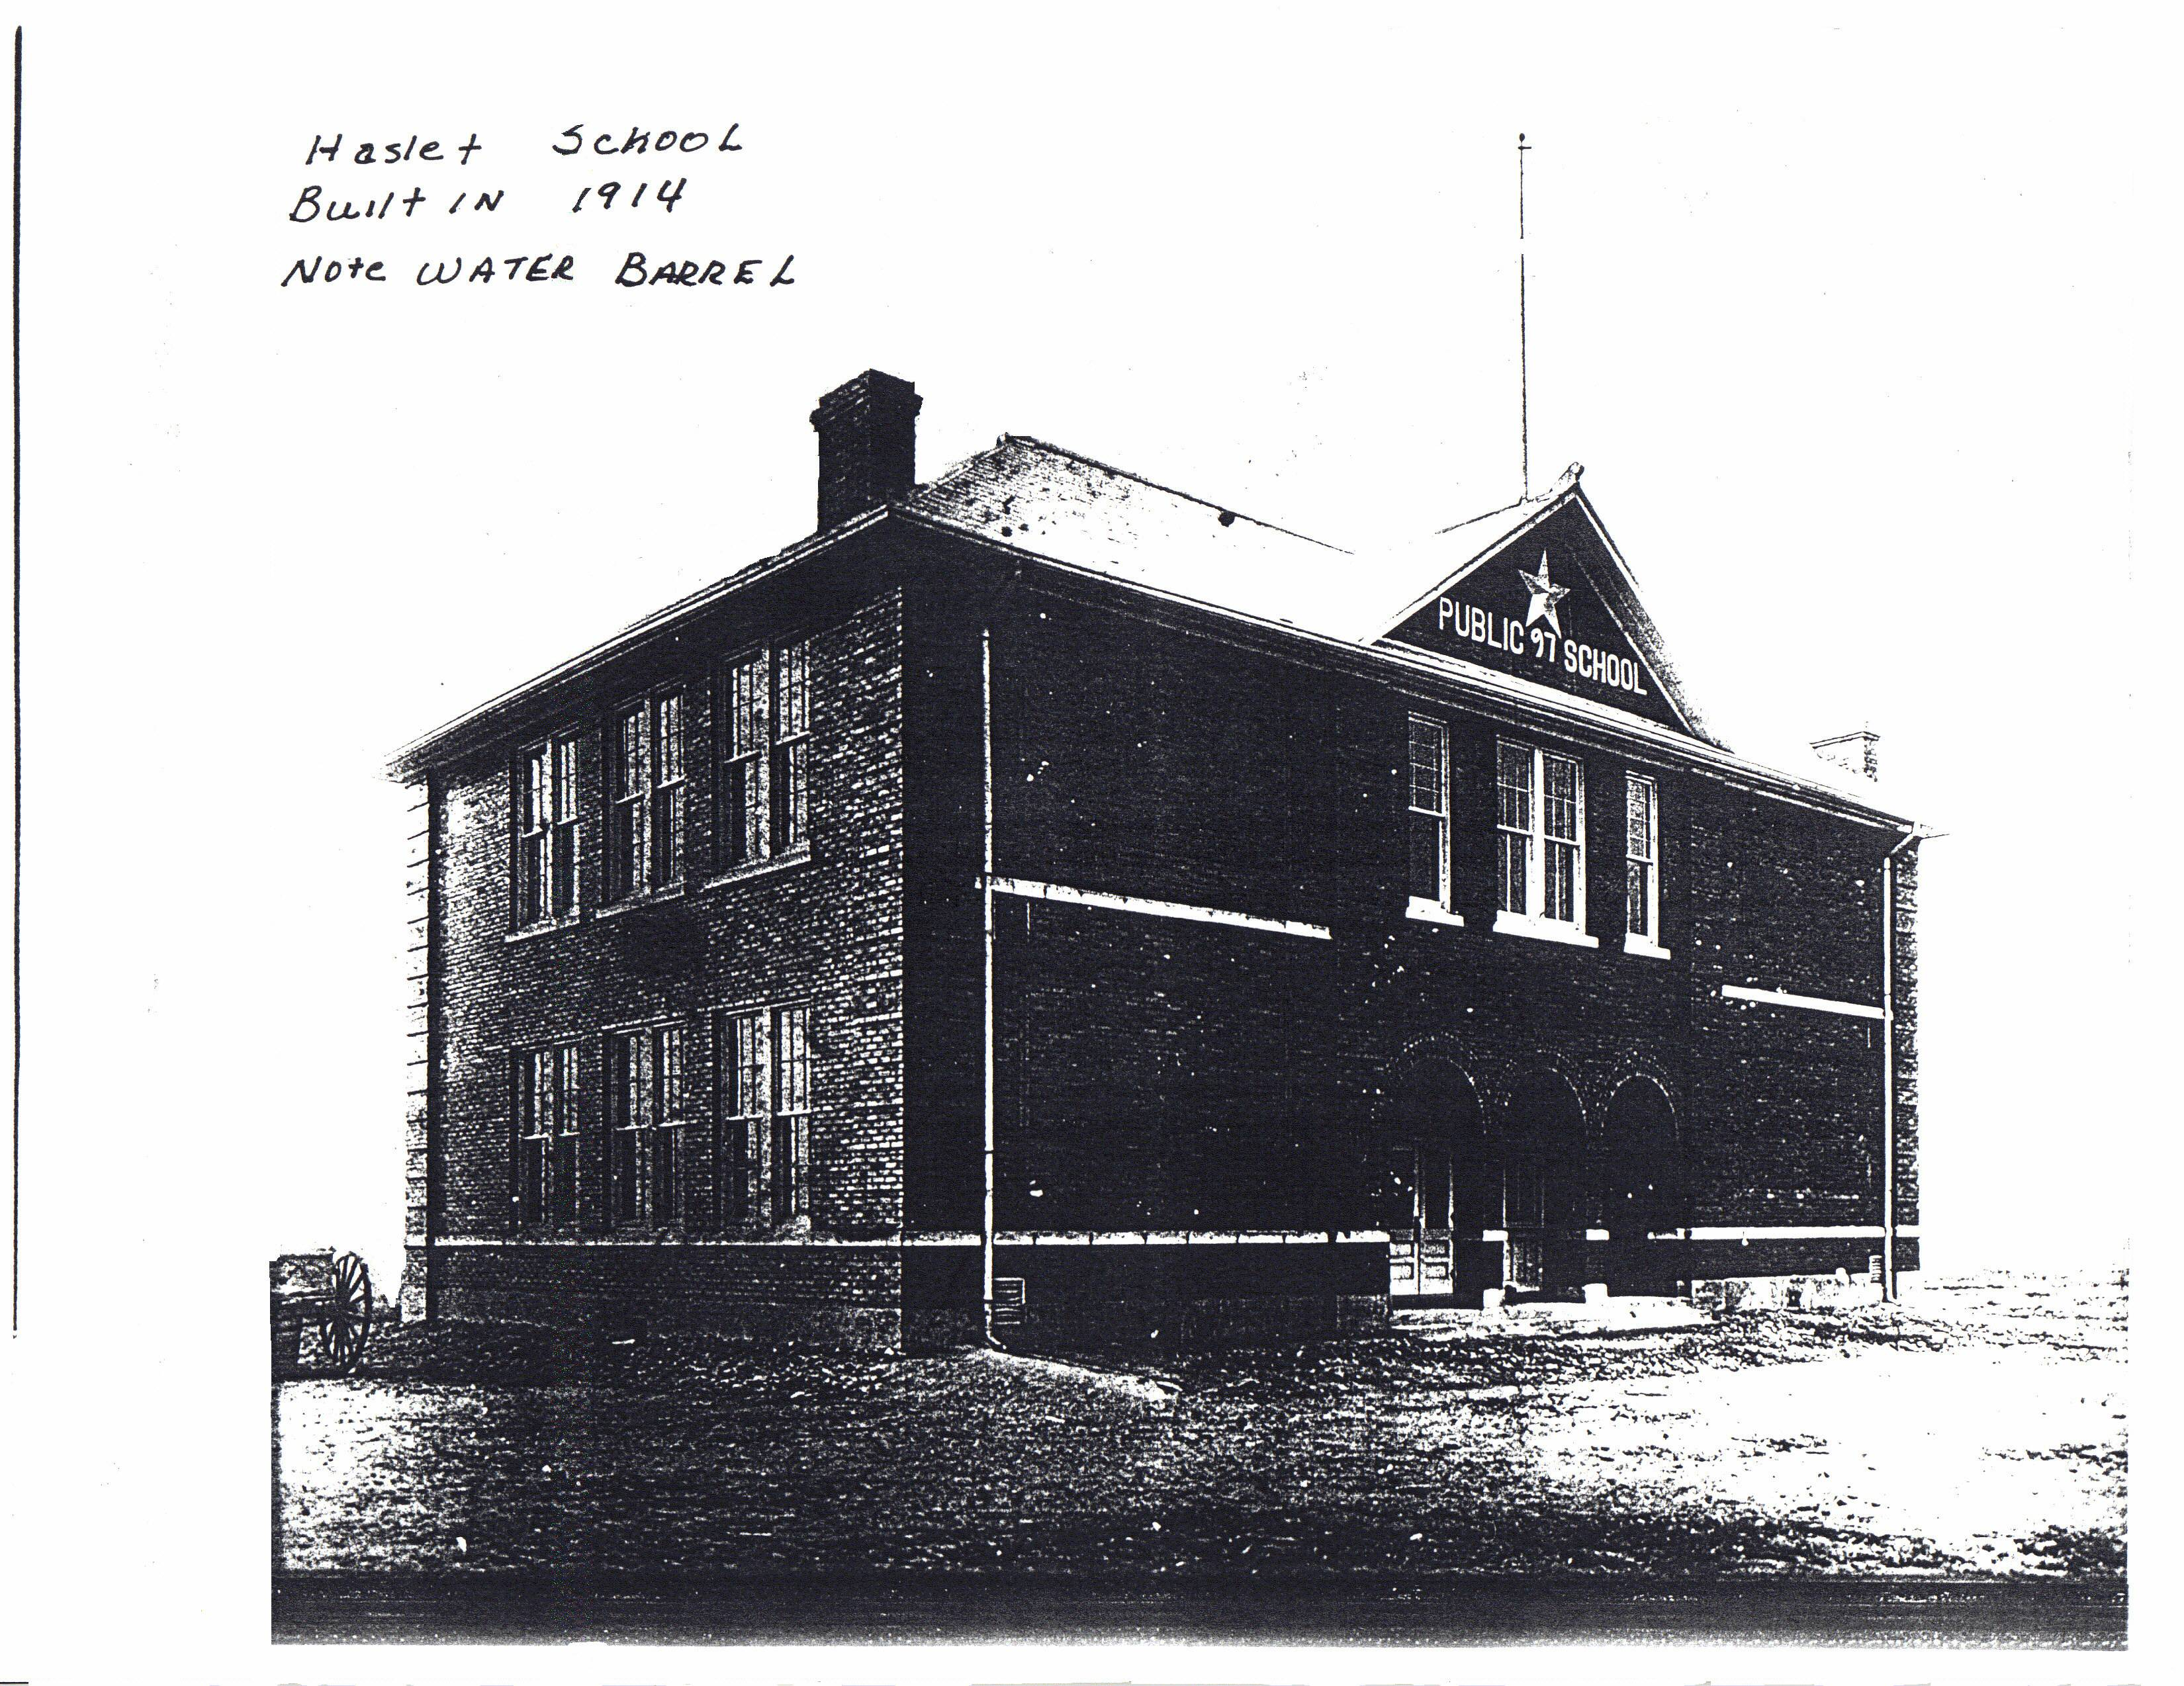 Haslet School   Built in 1914